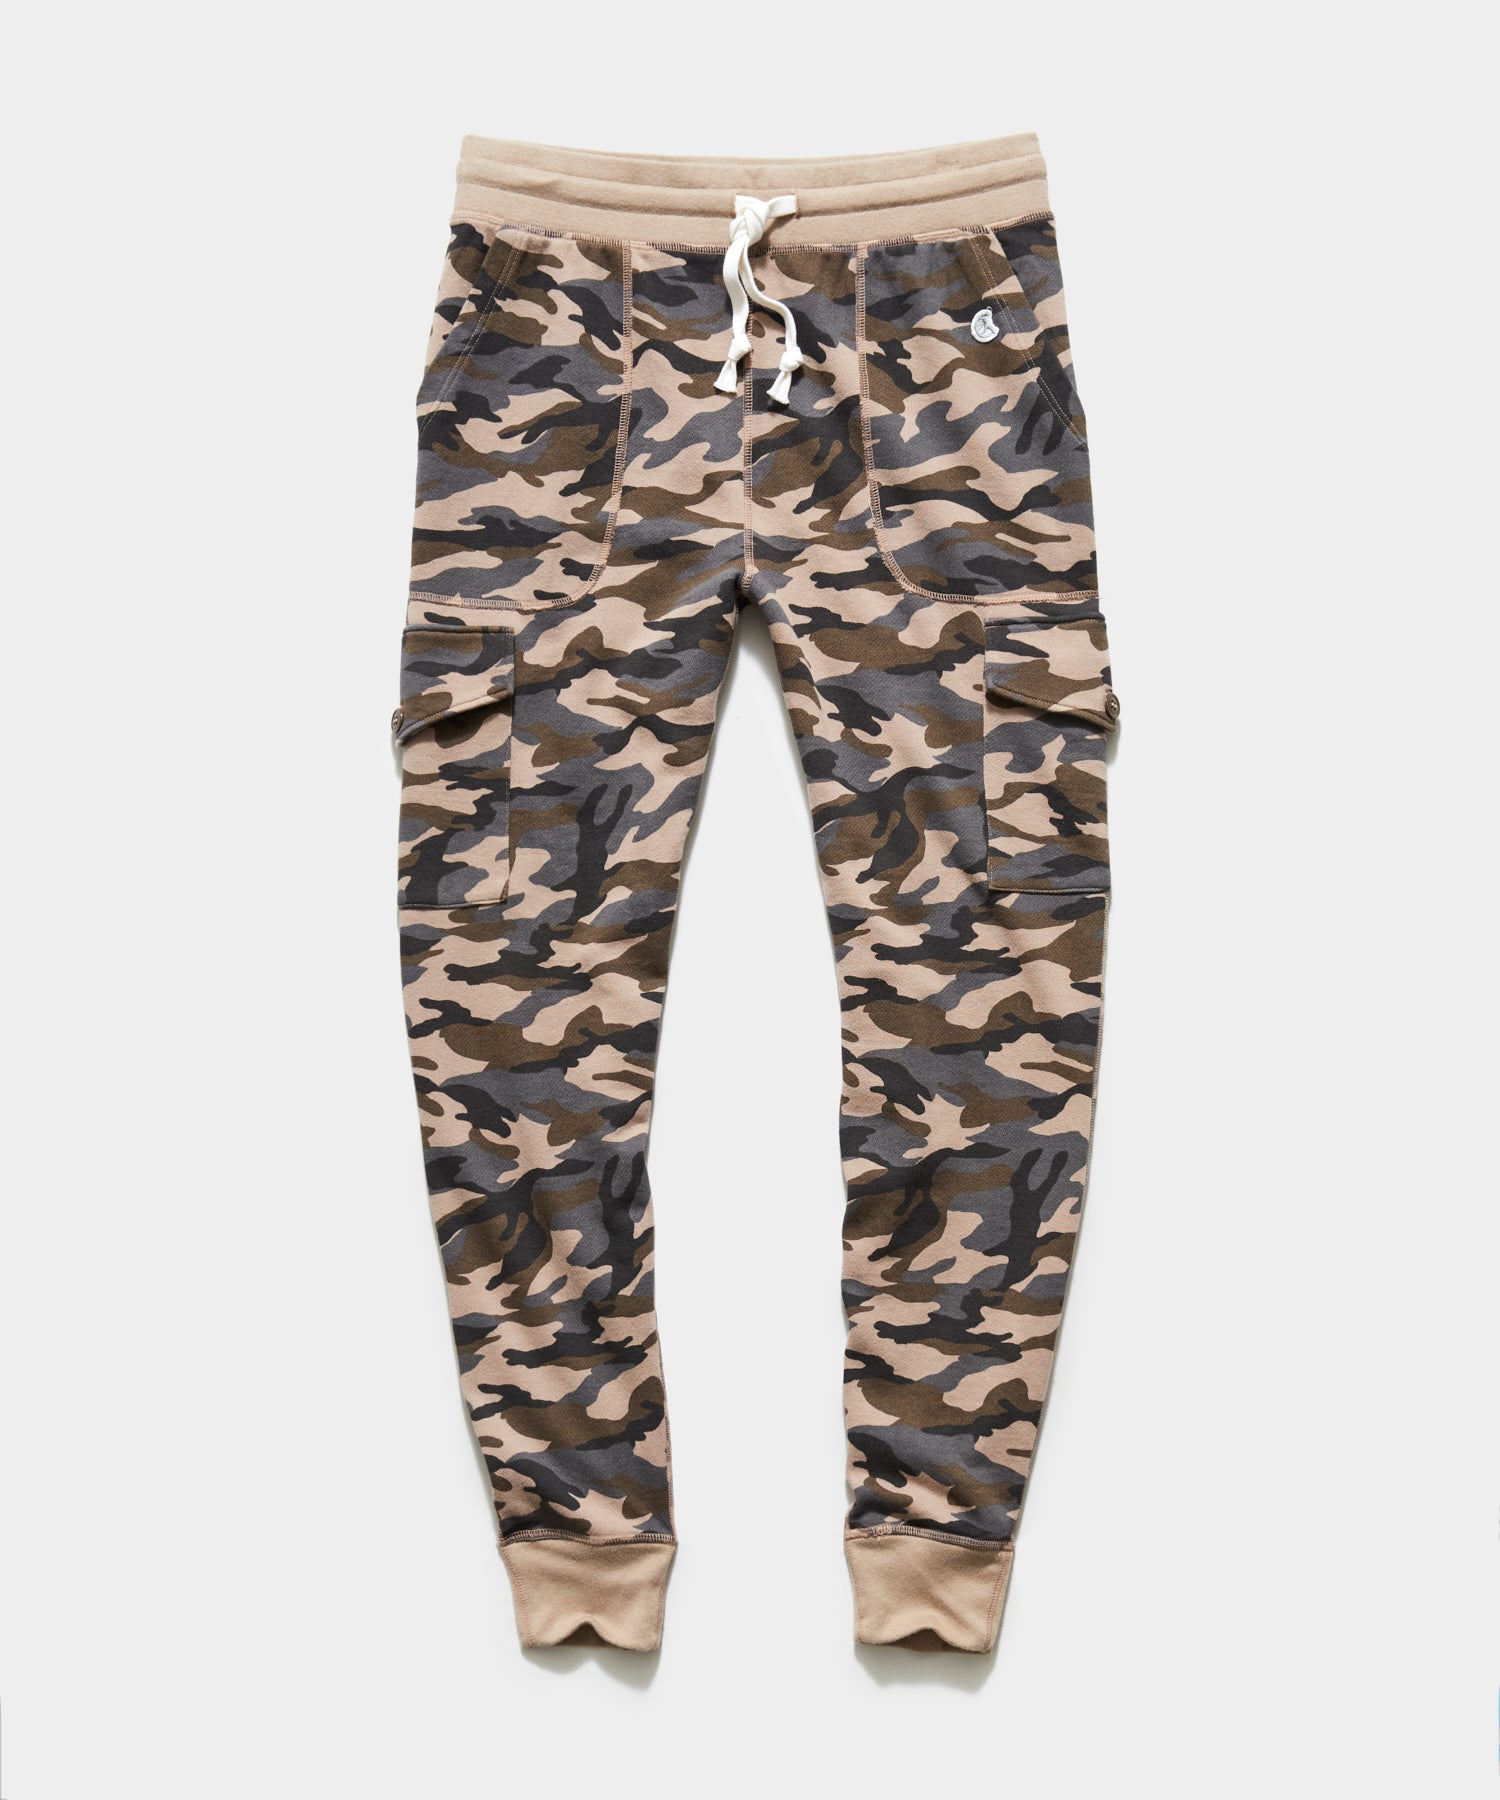 Camo Slim Cargo Sweatpant in Tan